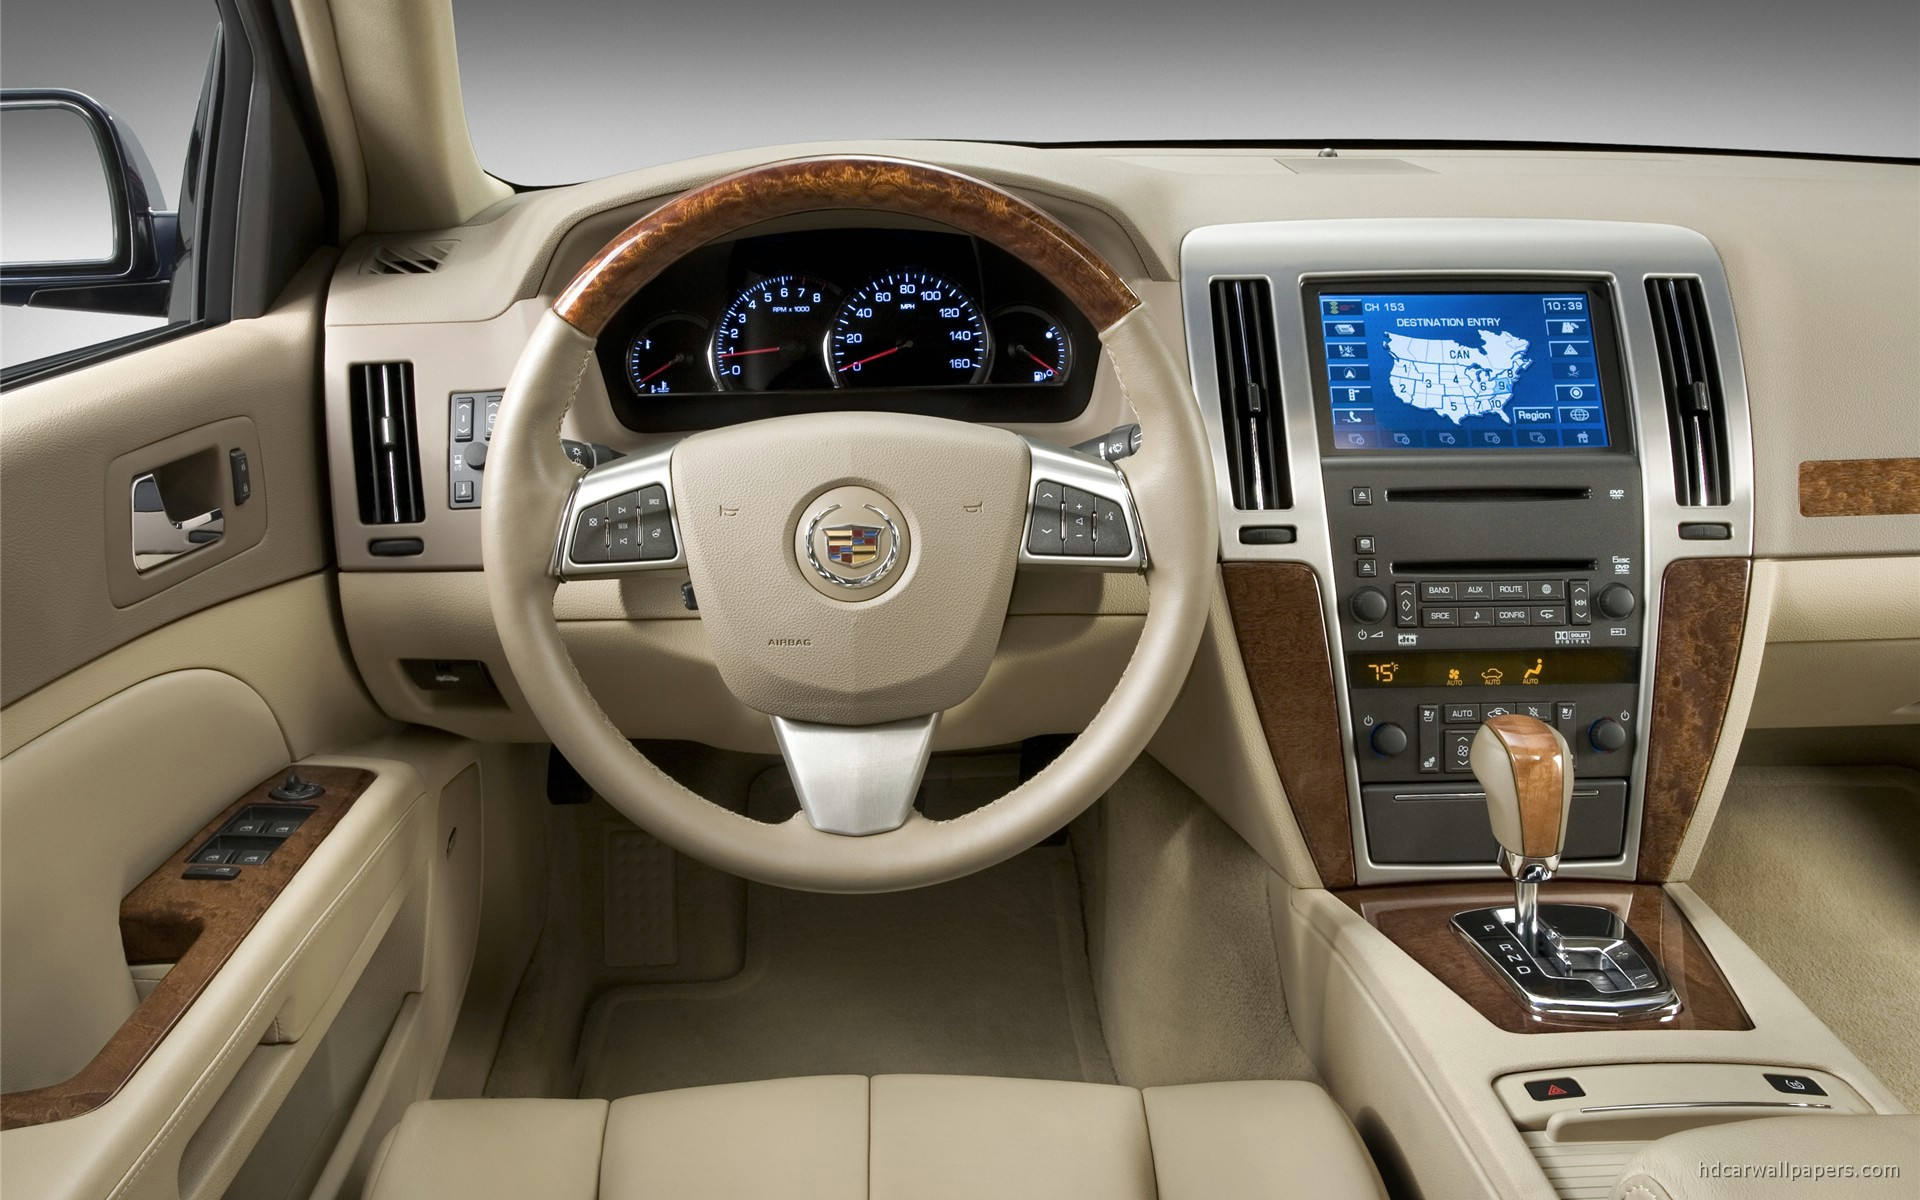 2016 Cadillac Escalade Interior >> Cadillac STS Car Interior Wallpaper | HD Car Wallpapers | ID #529